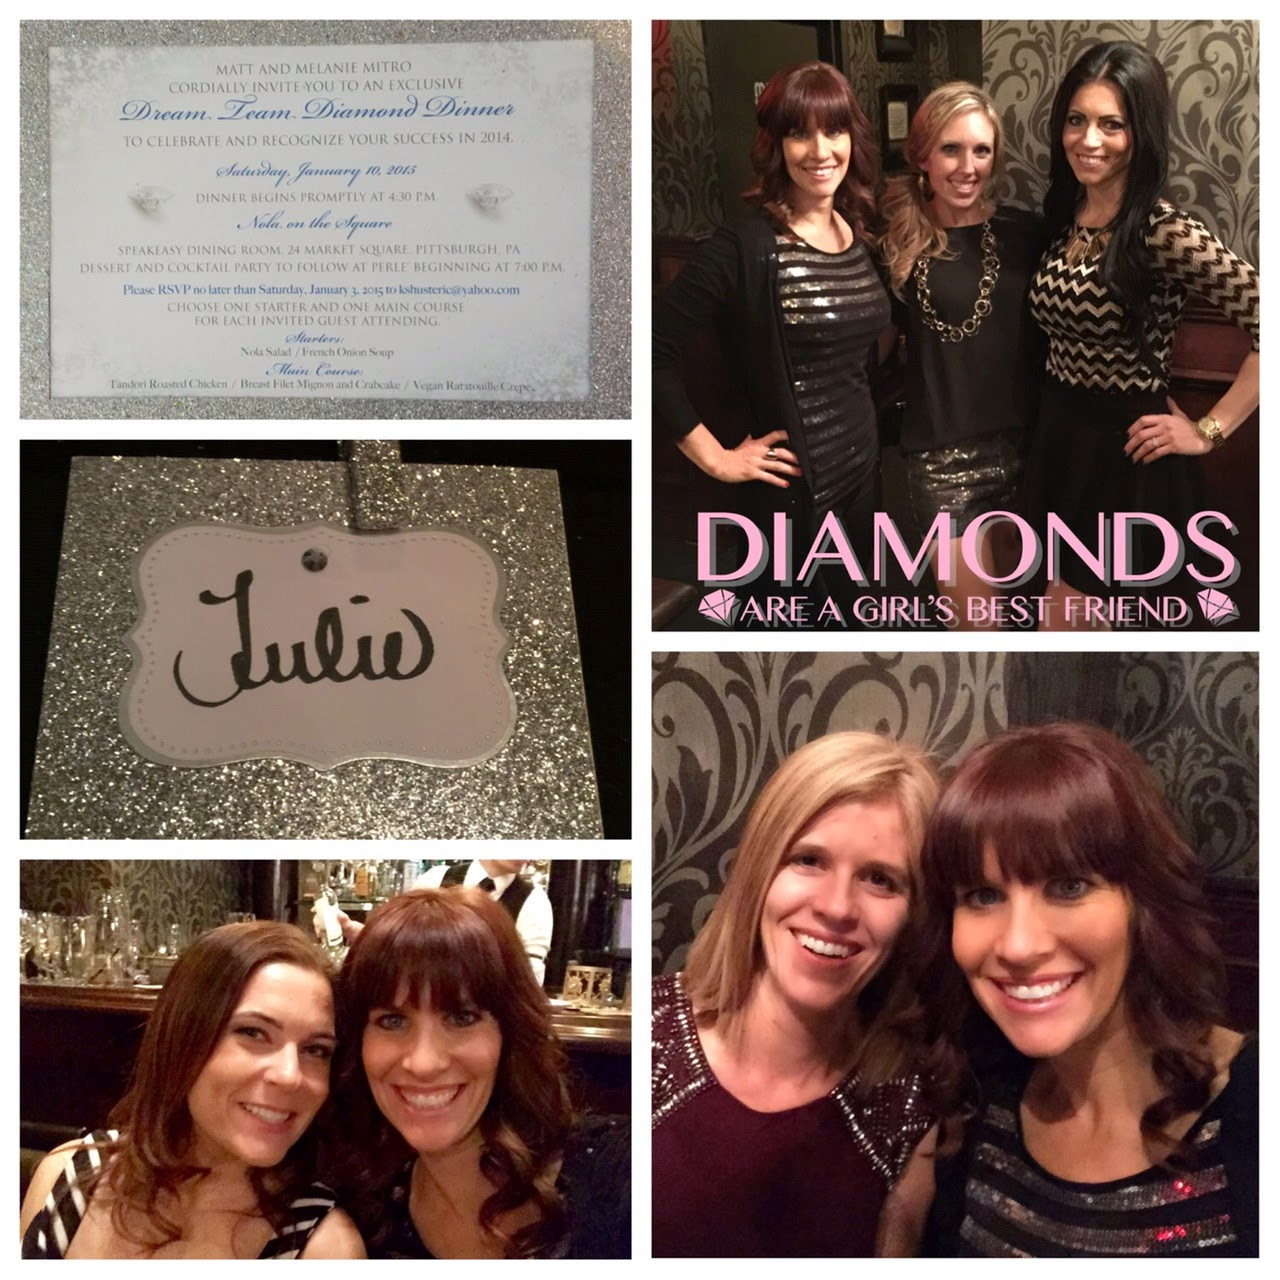 Diamond Dinner Celebration, Super Saturday, www.HealthyFitFocused.com